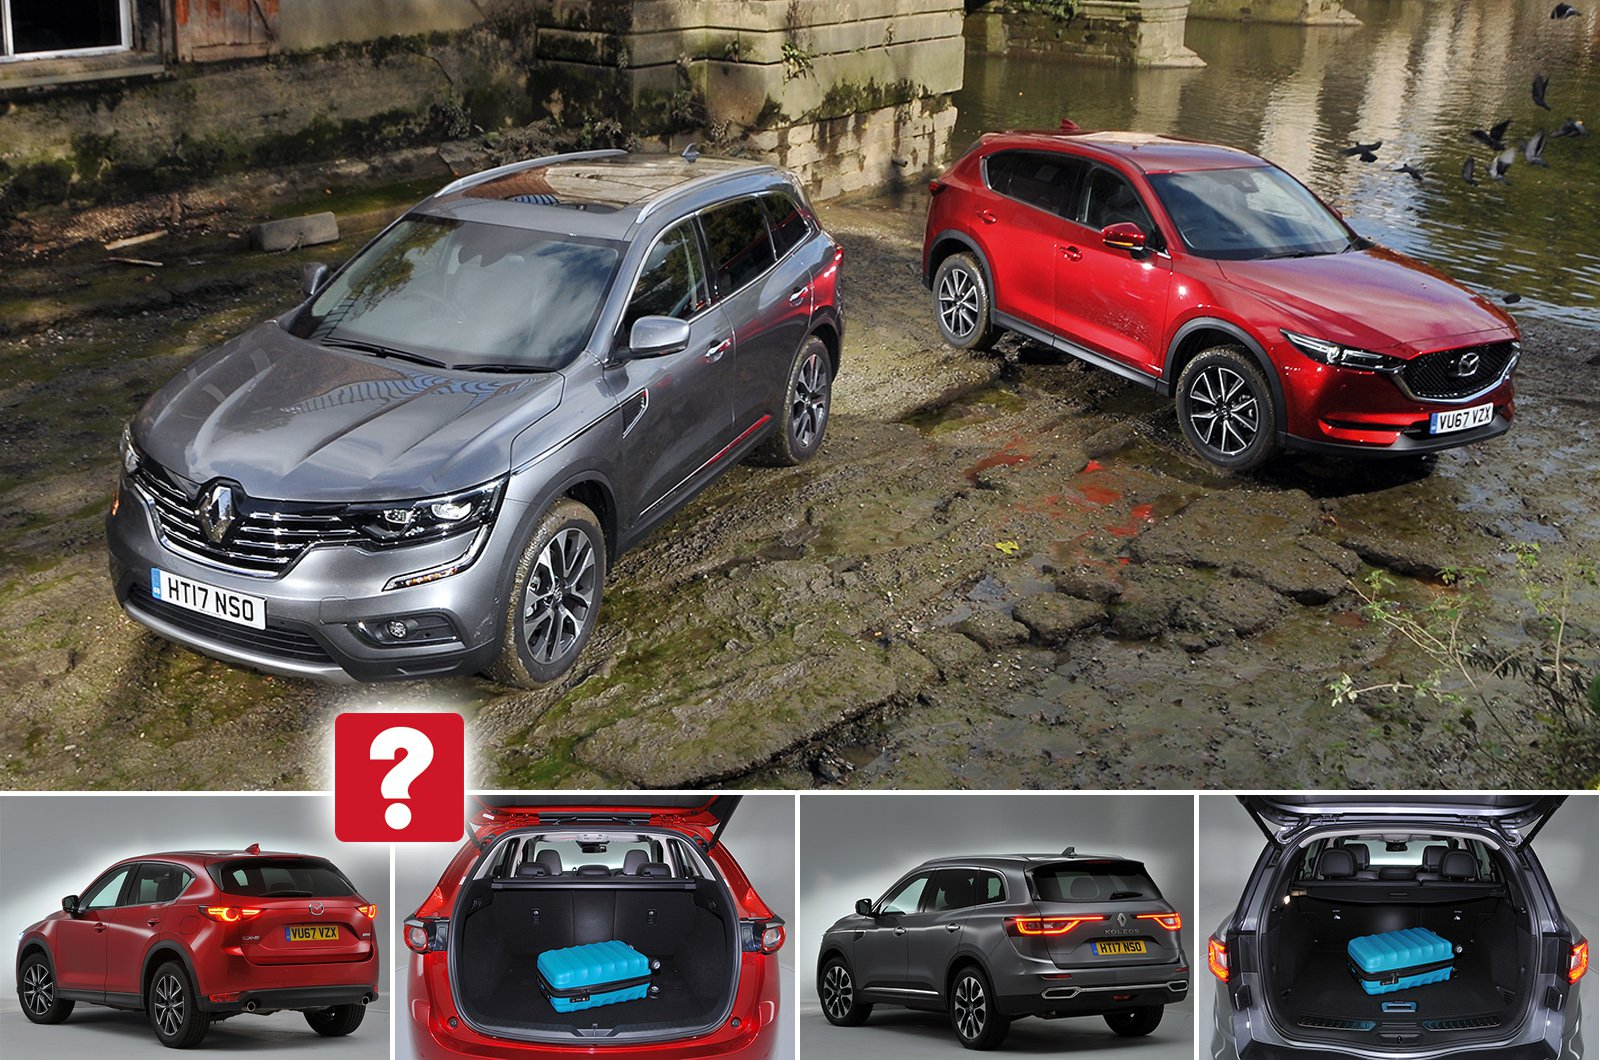 Used test: Renault Koleos vs Mazda CX-5